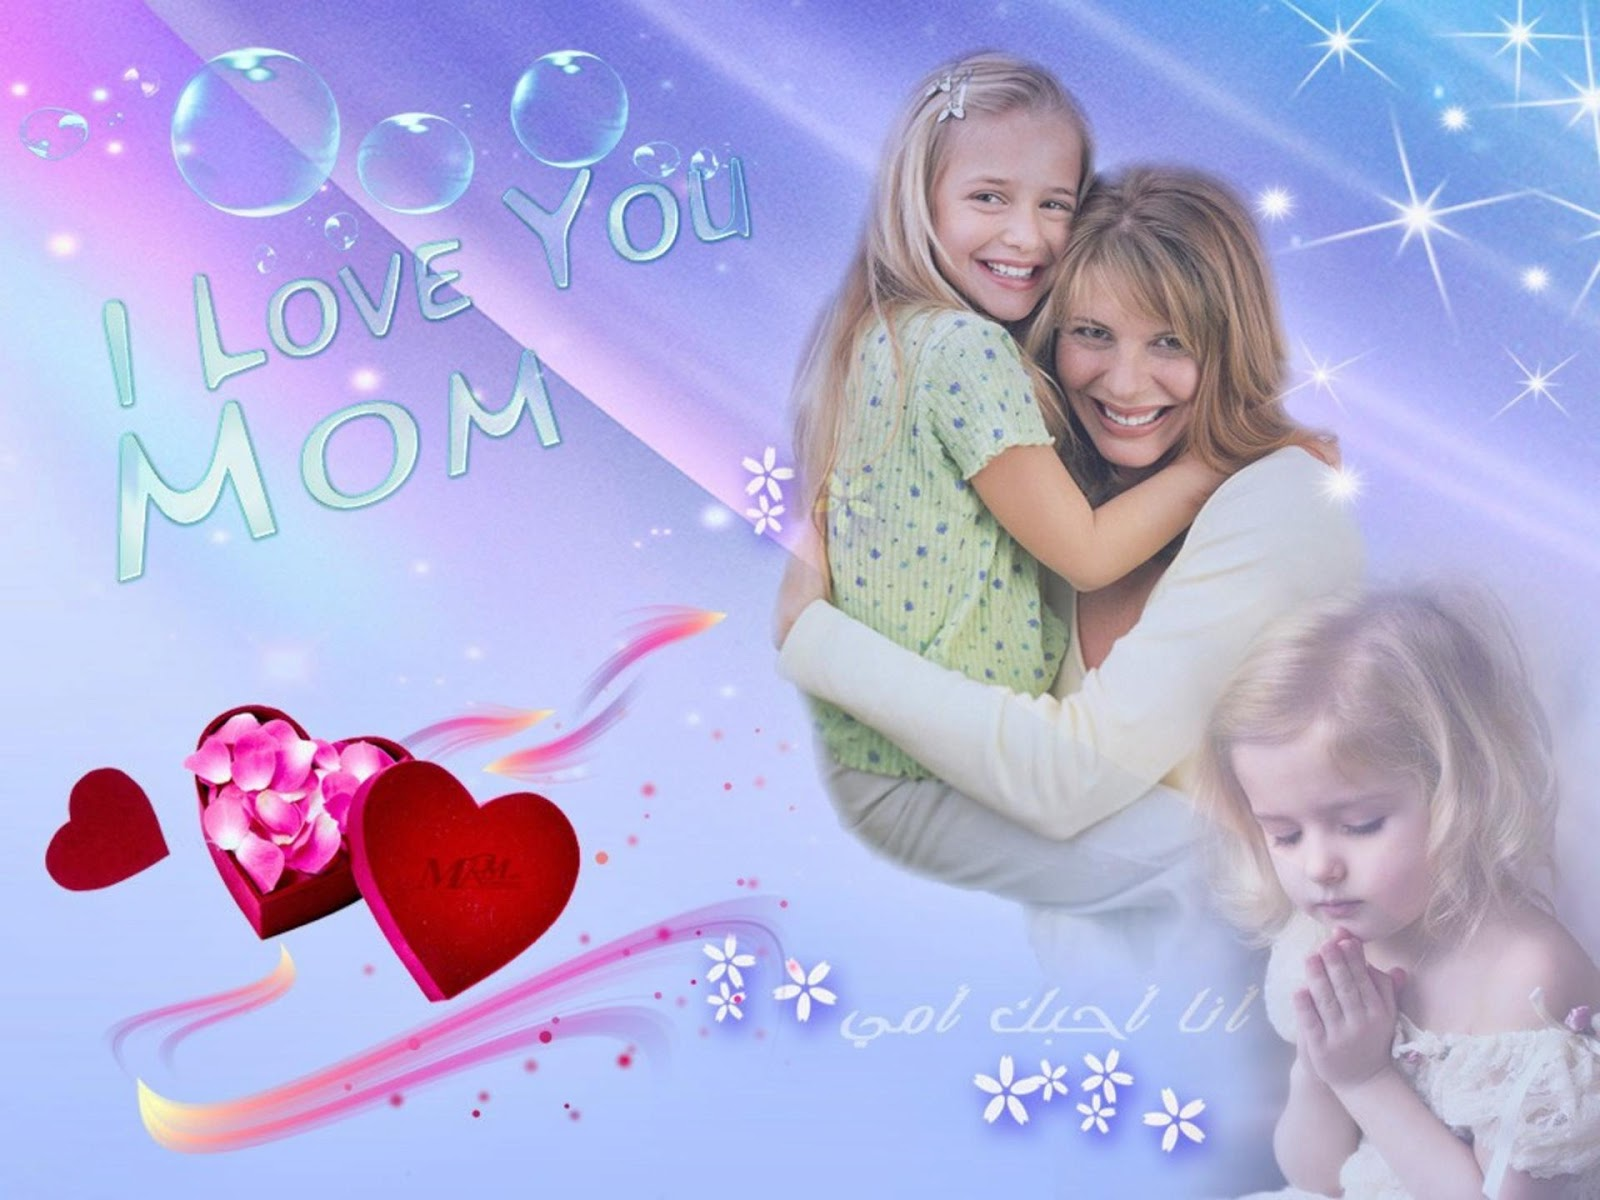 Love You Mom Hd Wallpaper : Wallpaper Free Download: Mother s Day Picture